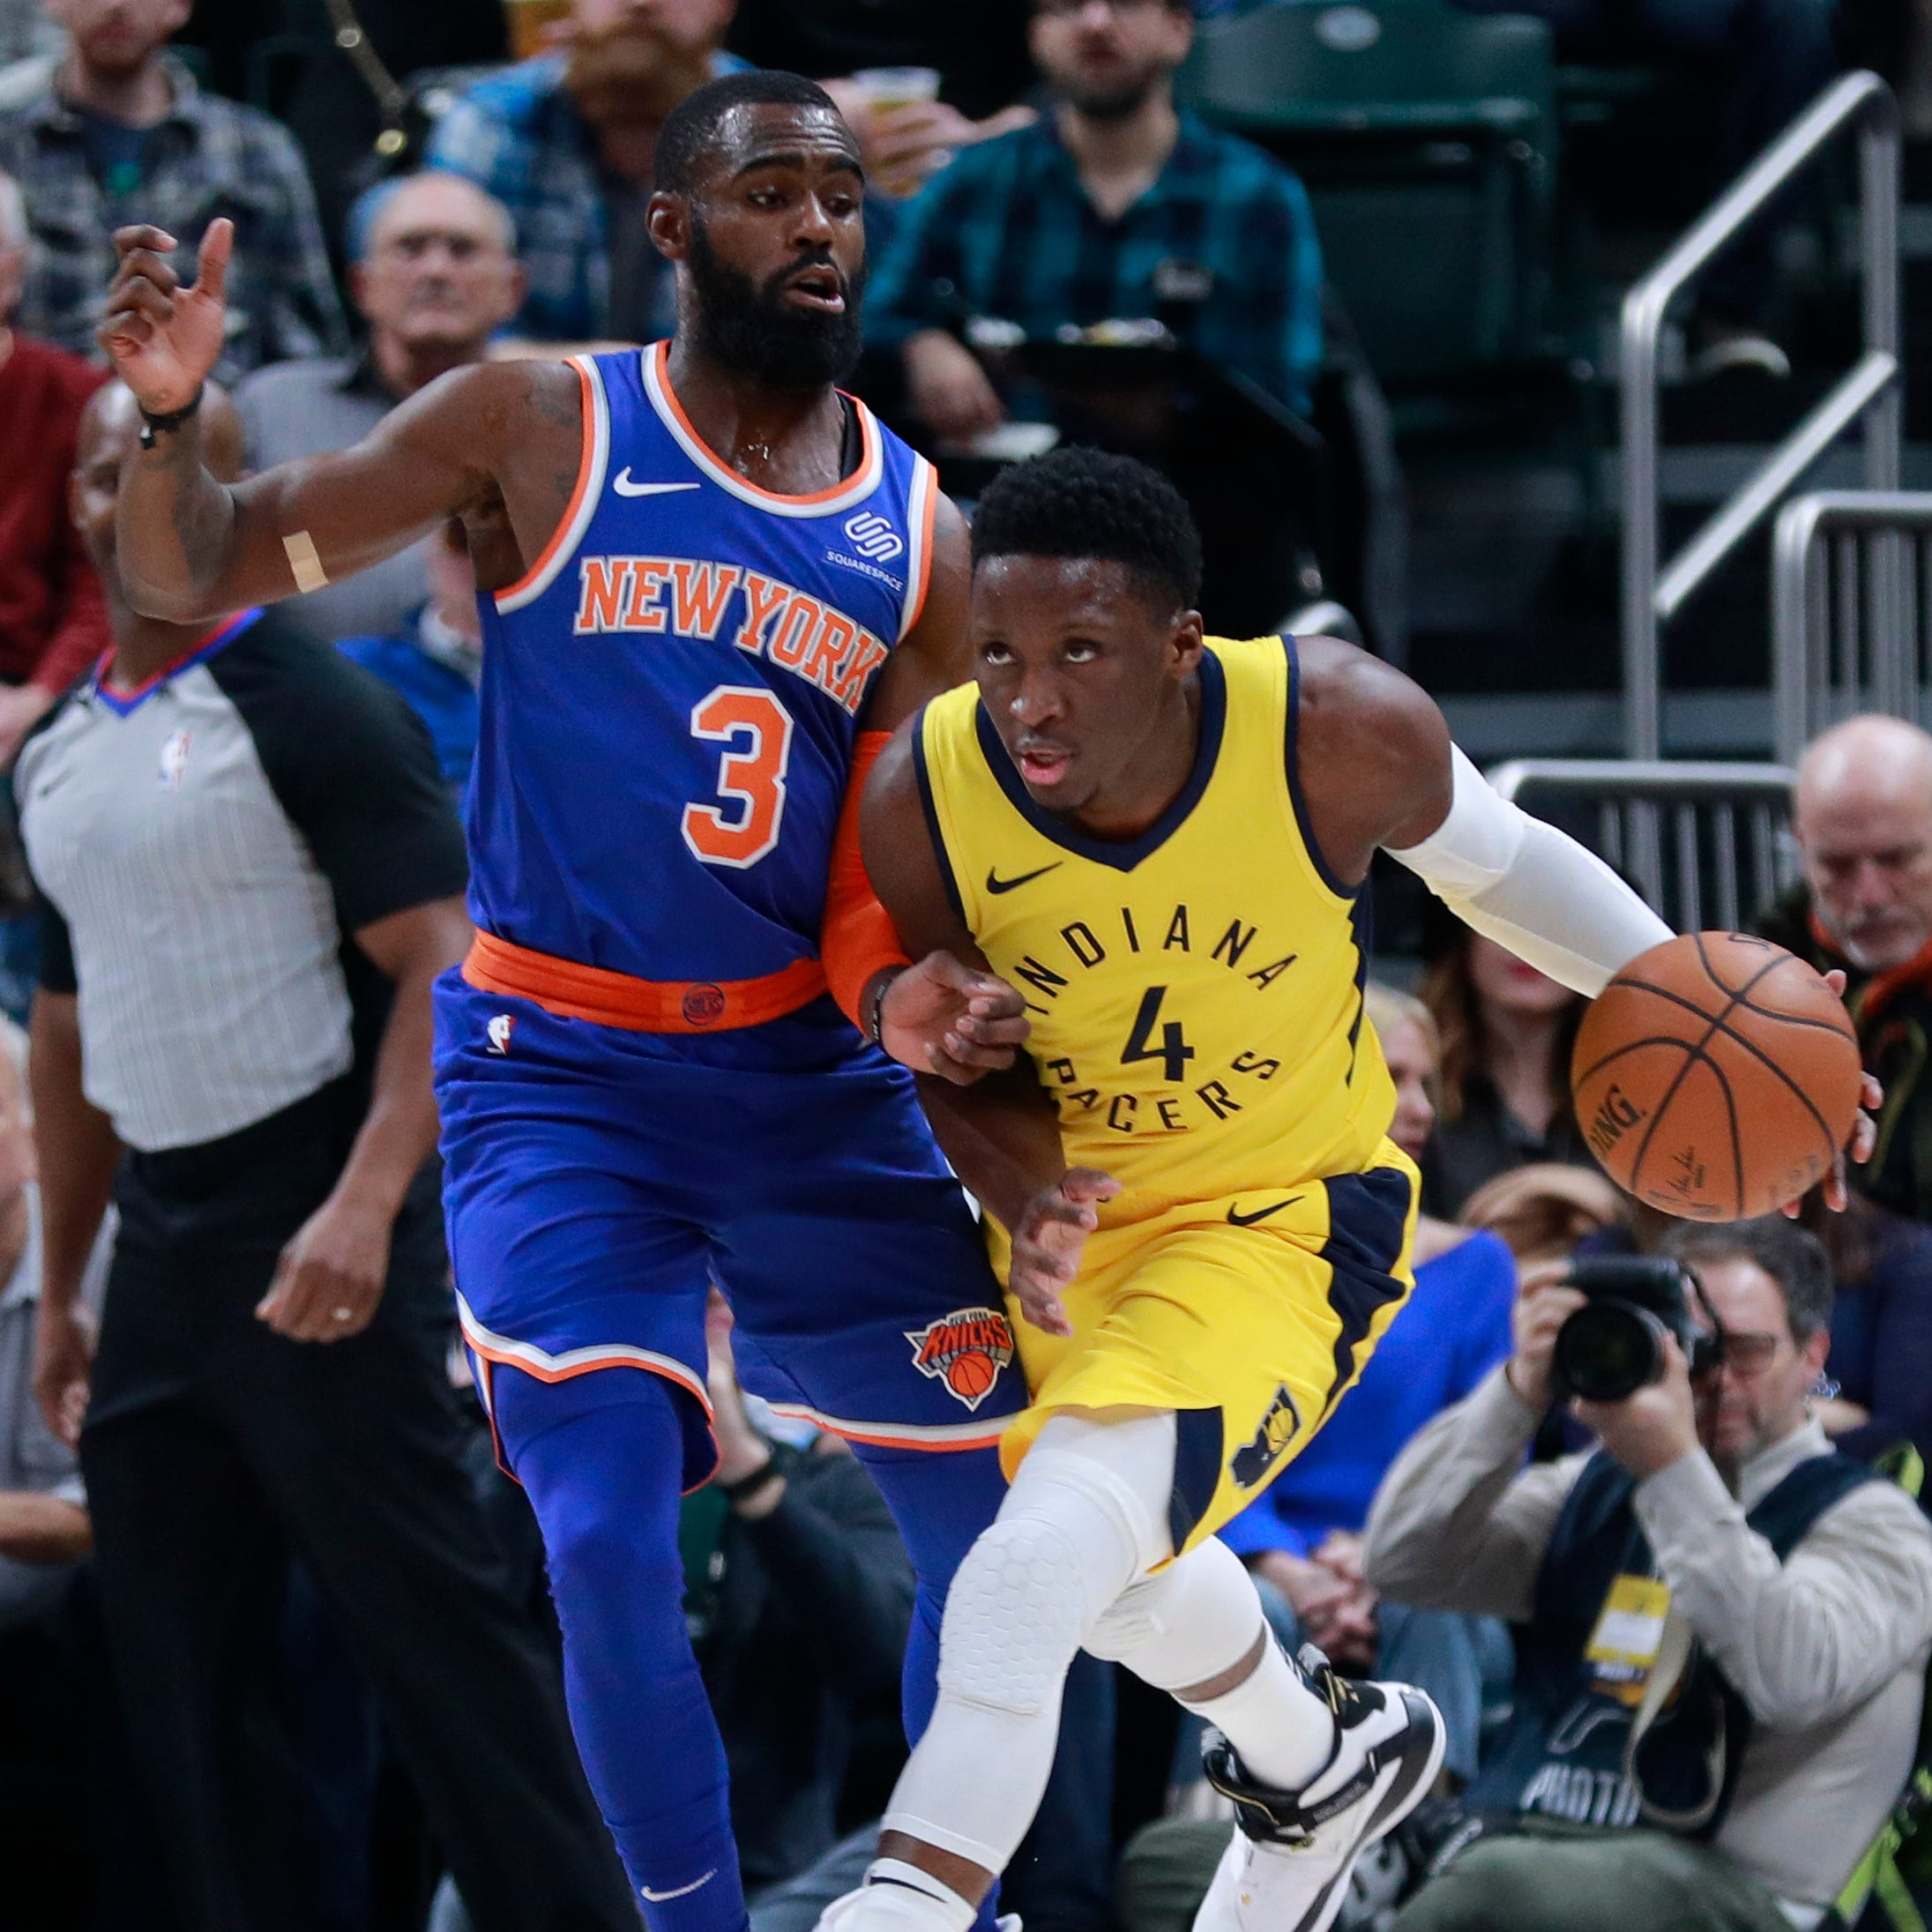 Myles Turner, Victor Oladipo close strong as Pacers earn 7th win in a row